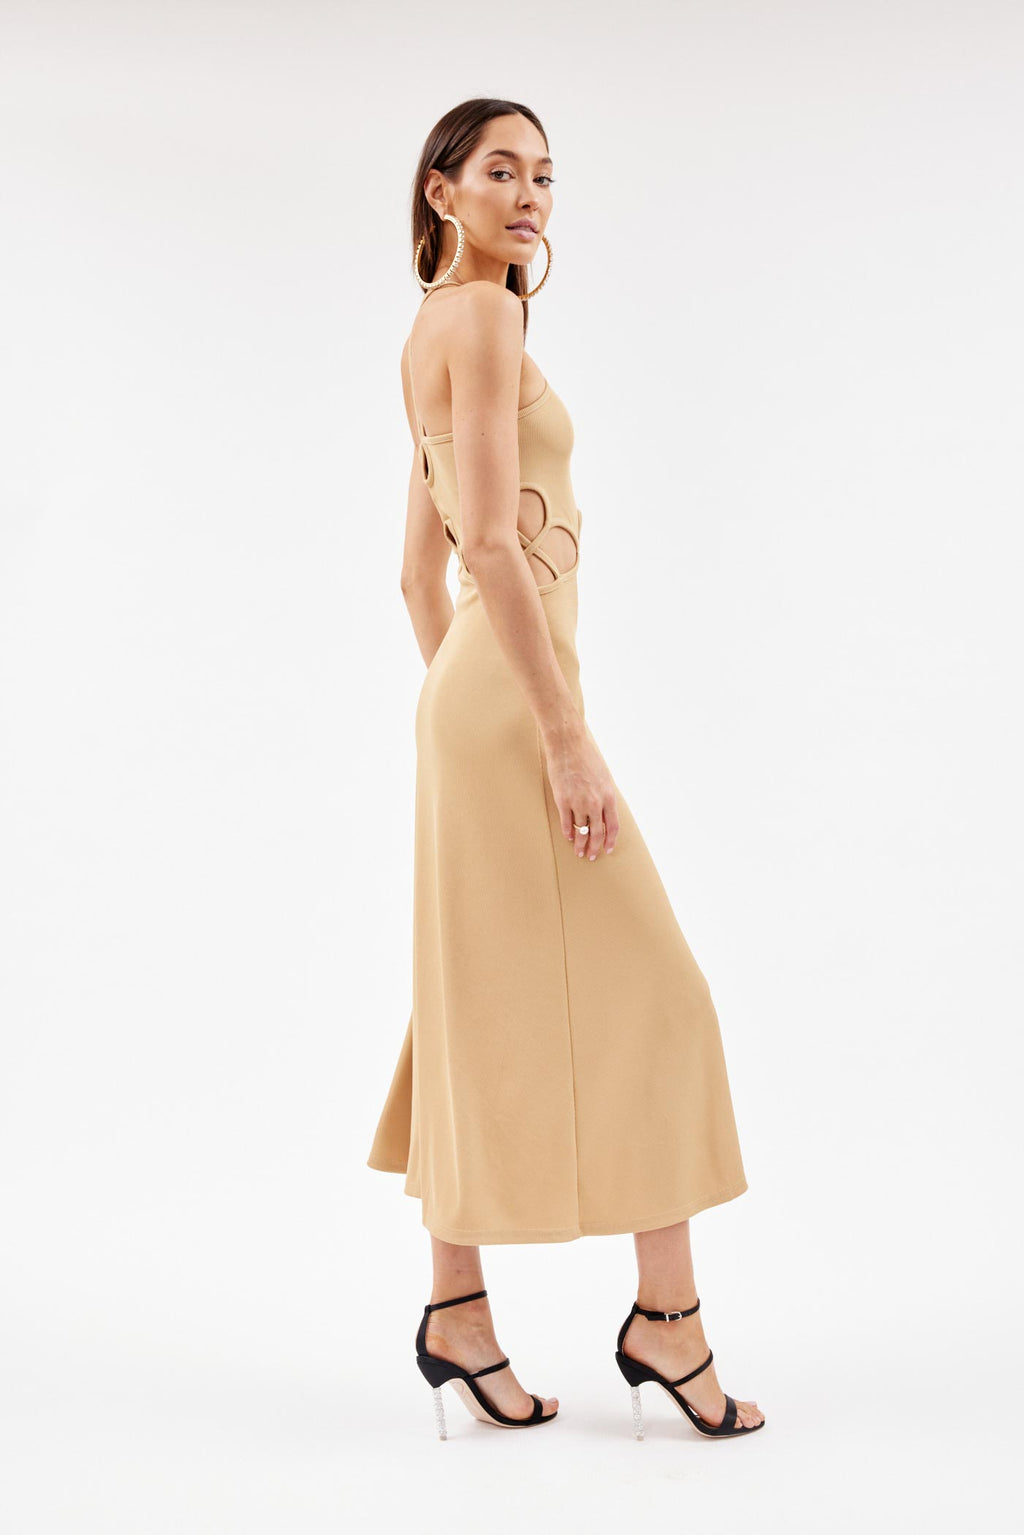 Looped Tan Dress